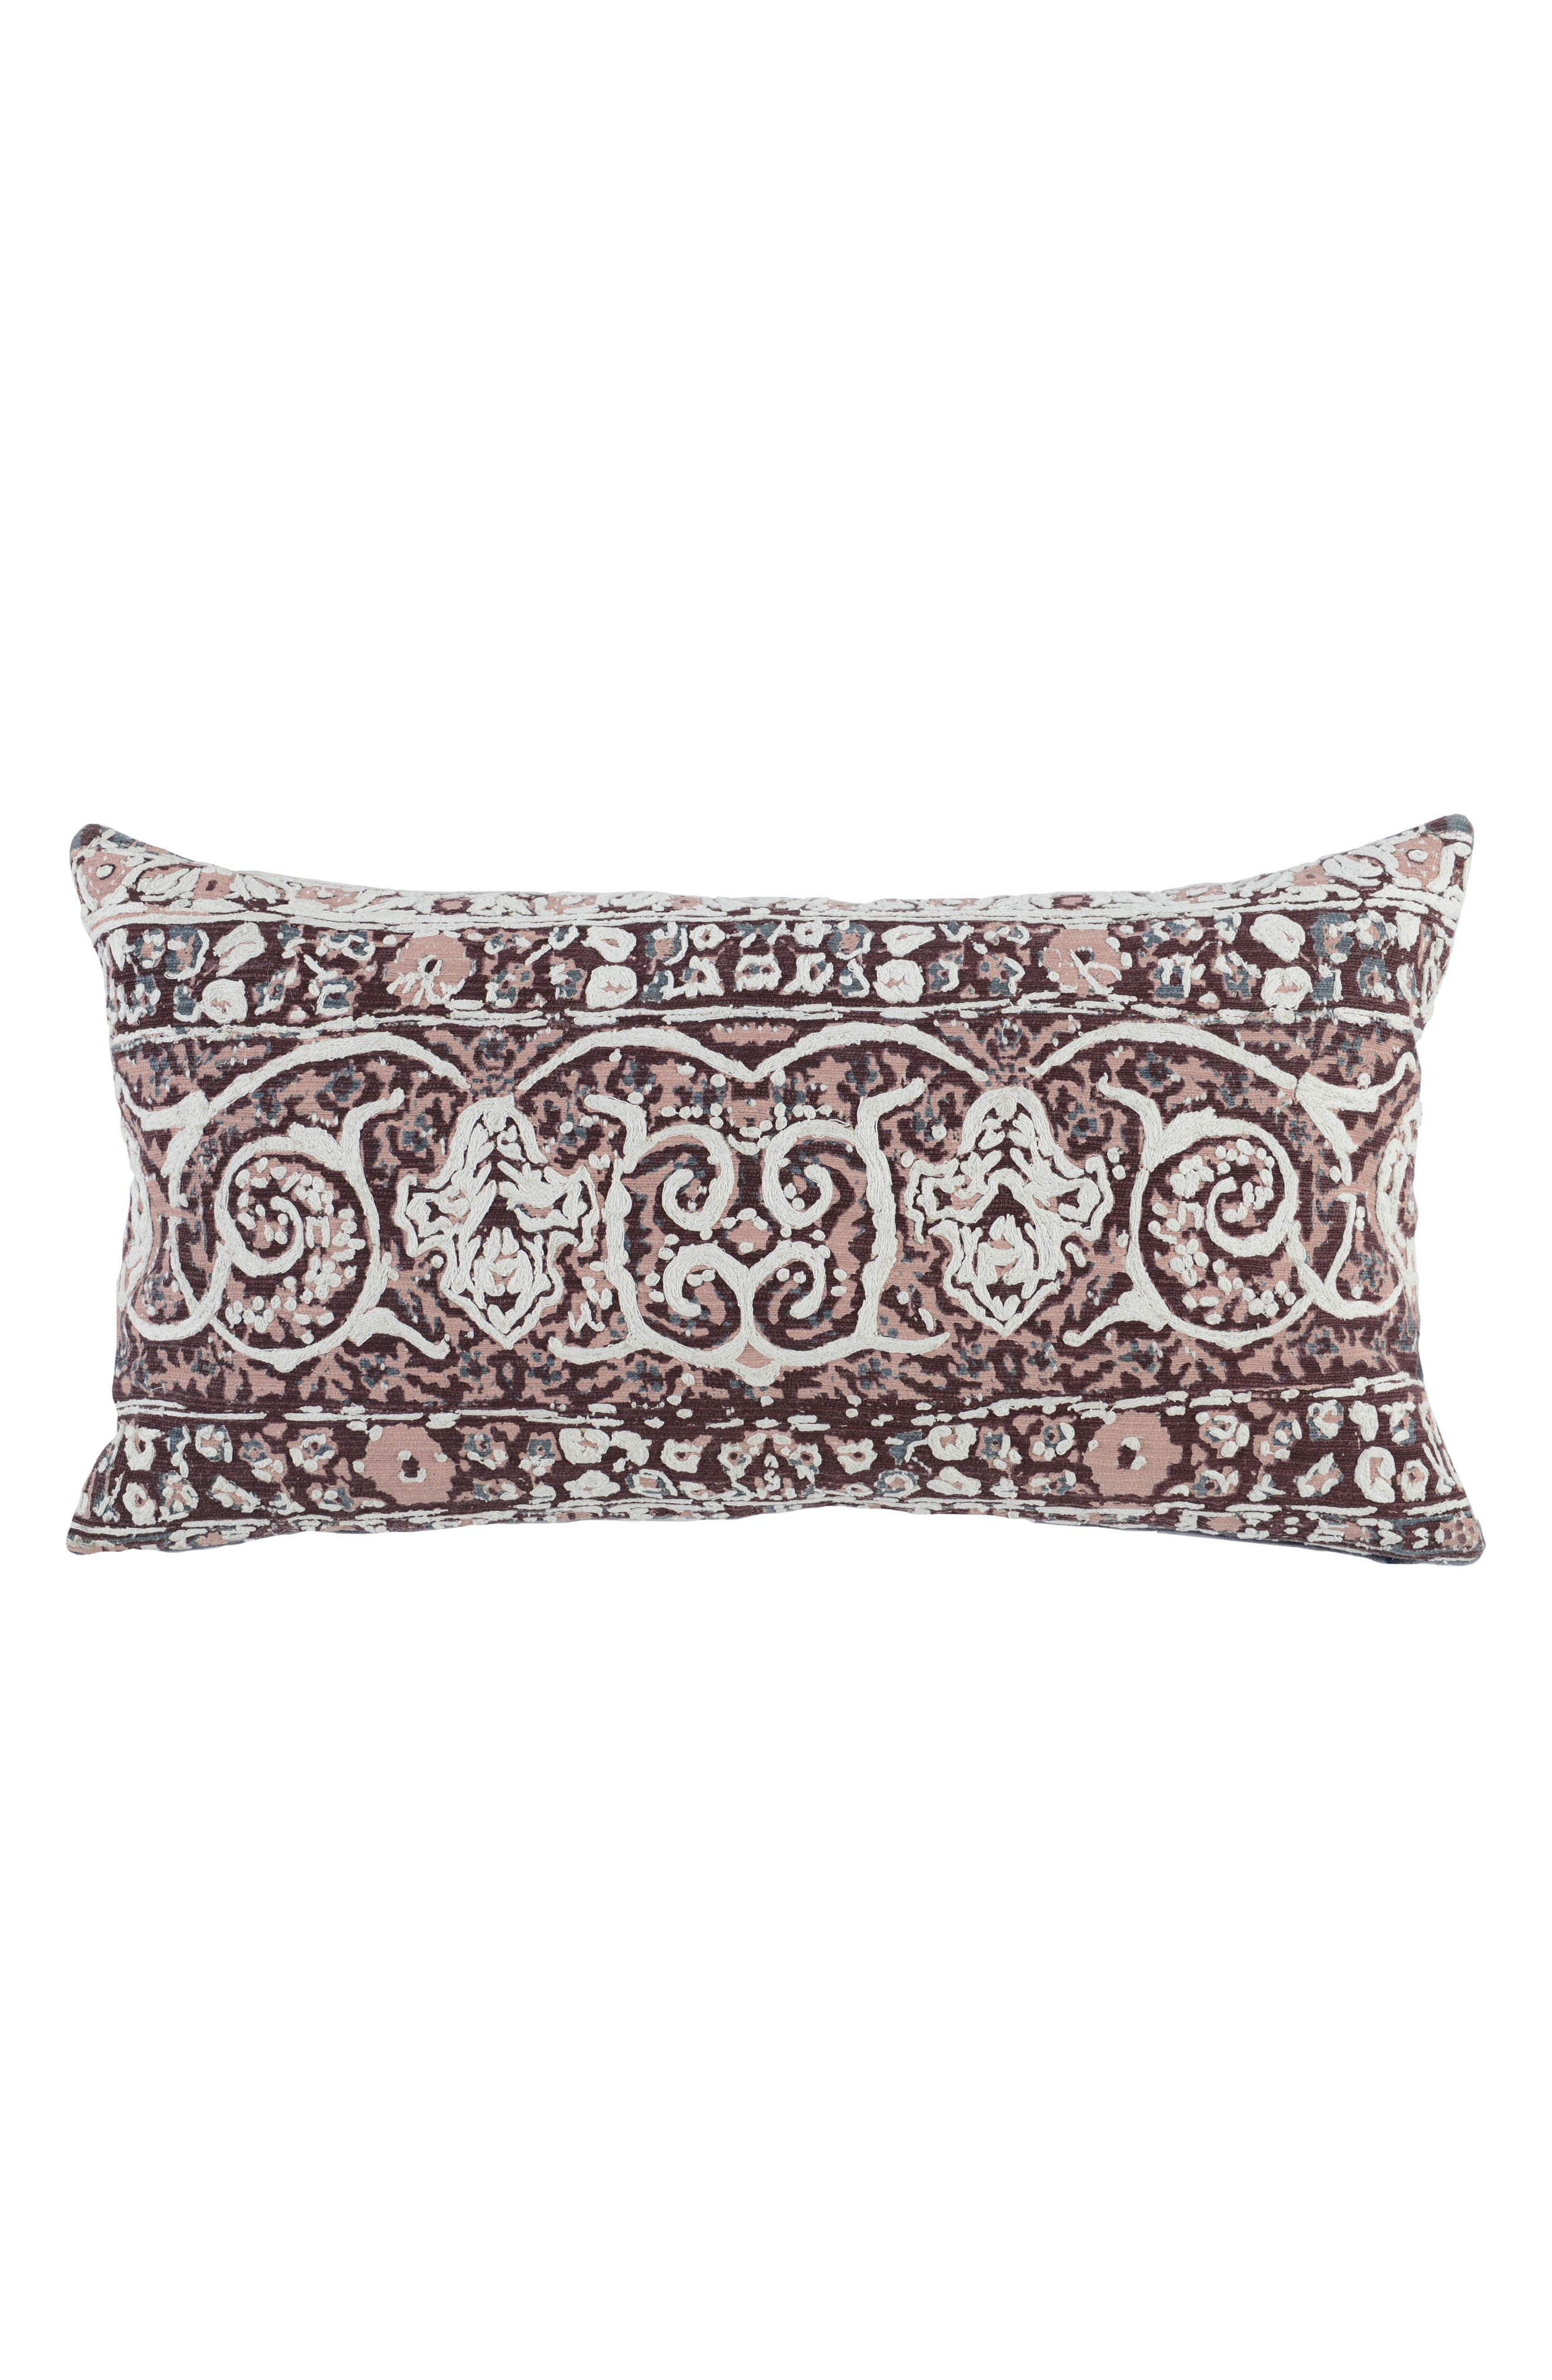 Sintia Accent Pillow,                         Main,                         color, WINE/ BLUSH